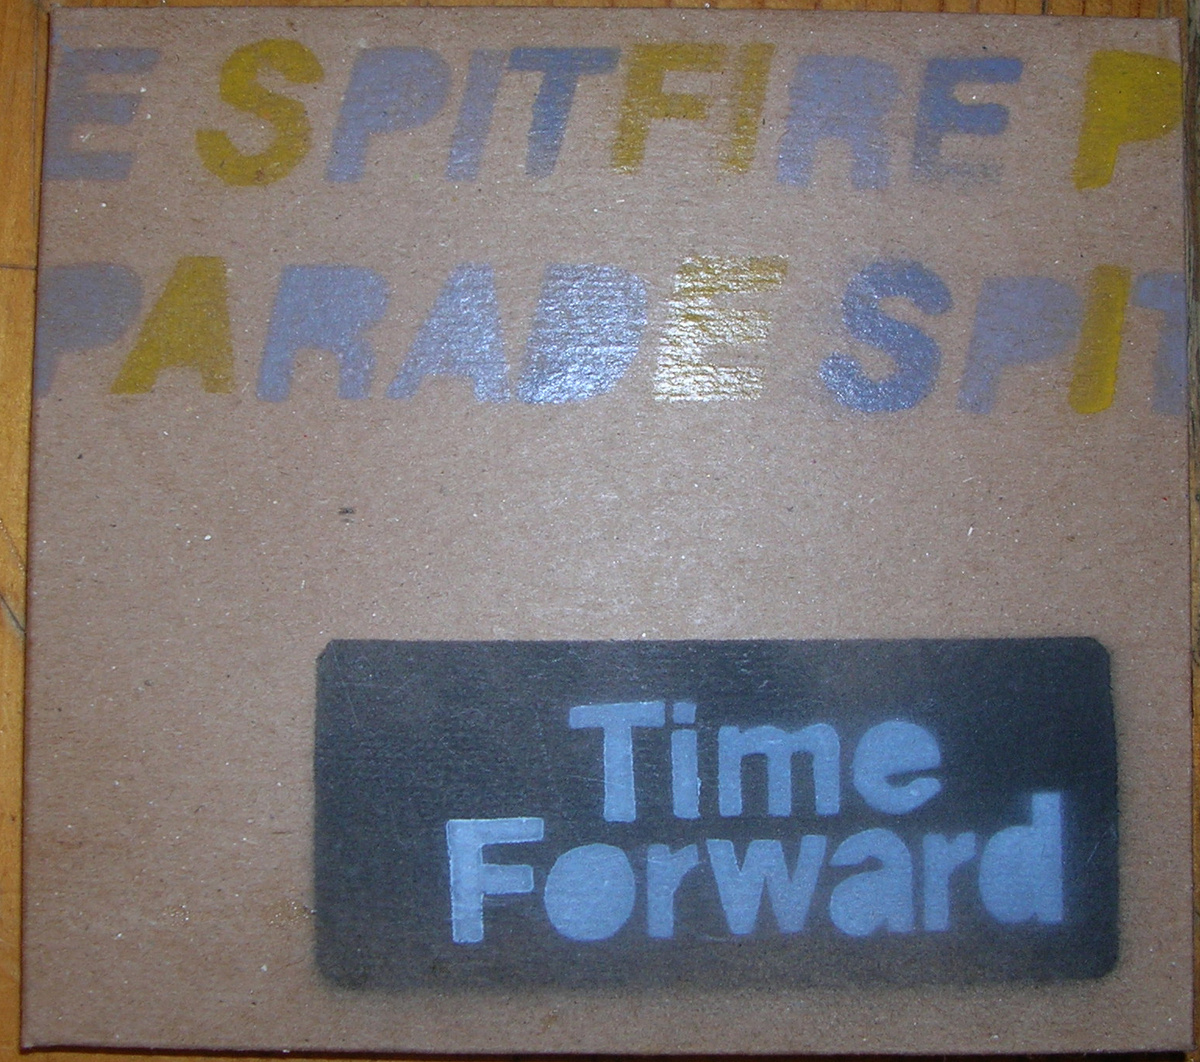 """TIME FORWARD (Spitfire Parade EP)     MESS & NOISE  The name of this band would suggest an anglophile bent – whether referring to the famous WWII fighter plane, the classic Triumph sportscar, the 1966 BSA motorbike or the 10 Royal Navy ships that bore the moniker Spitfire. A casual listen to their music might even bear this out, with its nods to the British punk of Wire and The Buzzcocks. But as much as 'Parallel Gram' – the first track off Spitfire Parade's new EP Time Forward – spits and snarls with punk energy, buzzsaw guitars and a hyperactive rhythm, the vocal is curiously at odds with its skip-hop phrasing and parochial accent. Not that I have anything against Australian rap – I just didn't expect it. Full marks to the band for putting their most atypical song first on a CD though.  Full marks also for the spray-painted, collaged cardboard covers. Spitfire Parade's hands-on approach to artwork reflects the DIY spirit of their music. This band is clearly not in it for money or fame, but for the sheer love of making a racket and writing streamlined power-pop nuggets that burst with melodic hooks. Much of this is due to the combination of driving guitar and drums that appear to be played over the top of a drum machine beat; a neat trick that harks back to mid-'80s production techniques, but is generally shunned by today's retro rockers.  The prominent melody lines are supplied by a wheedling analogue synthesizer, played in the classic one-finger style. On songs like 'Acid Tongue' and 'Saw Her Around' they exhibit inner-city post-punk tones that would have been right at home on the Dogs In Space soundtrack.  The stand-out track, however, is 'Mint Edition', which has hit single written all over it. With its see-sawing bass line and killer sing-along chorus, """"Last night I dreamed/I held you in my arms/You were big and strong/Protecting me from harm"""", this song is a dance floor filler if ever I've heard one. It provides a tantalising glimpse of Spitfire Parade's cons"""